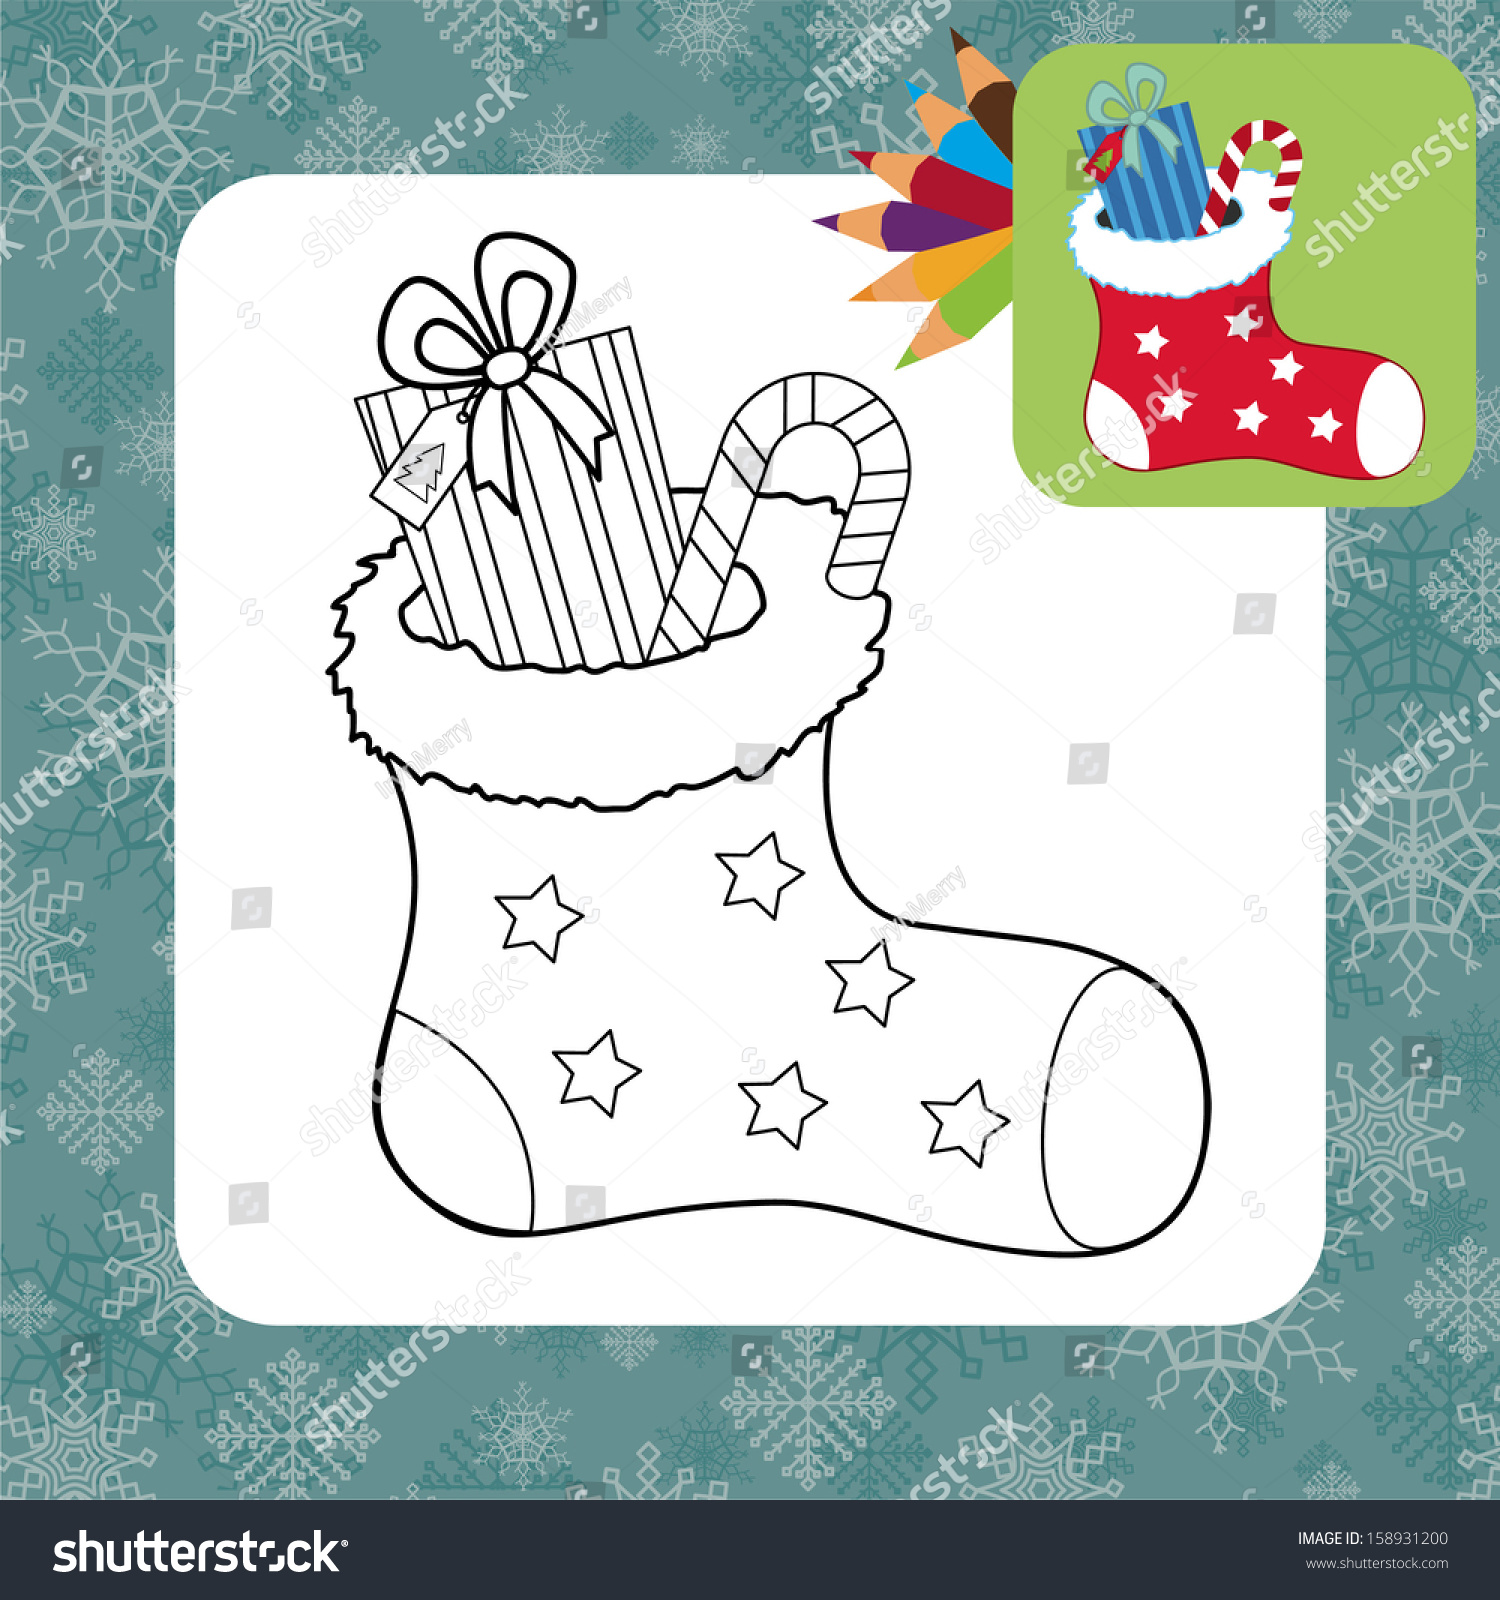 christmas gifts coloring page vector illustration stock vector